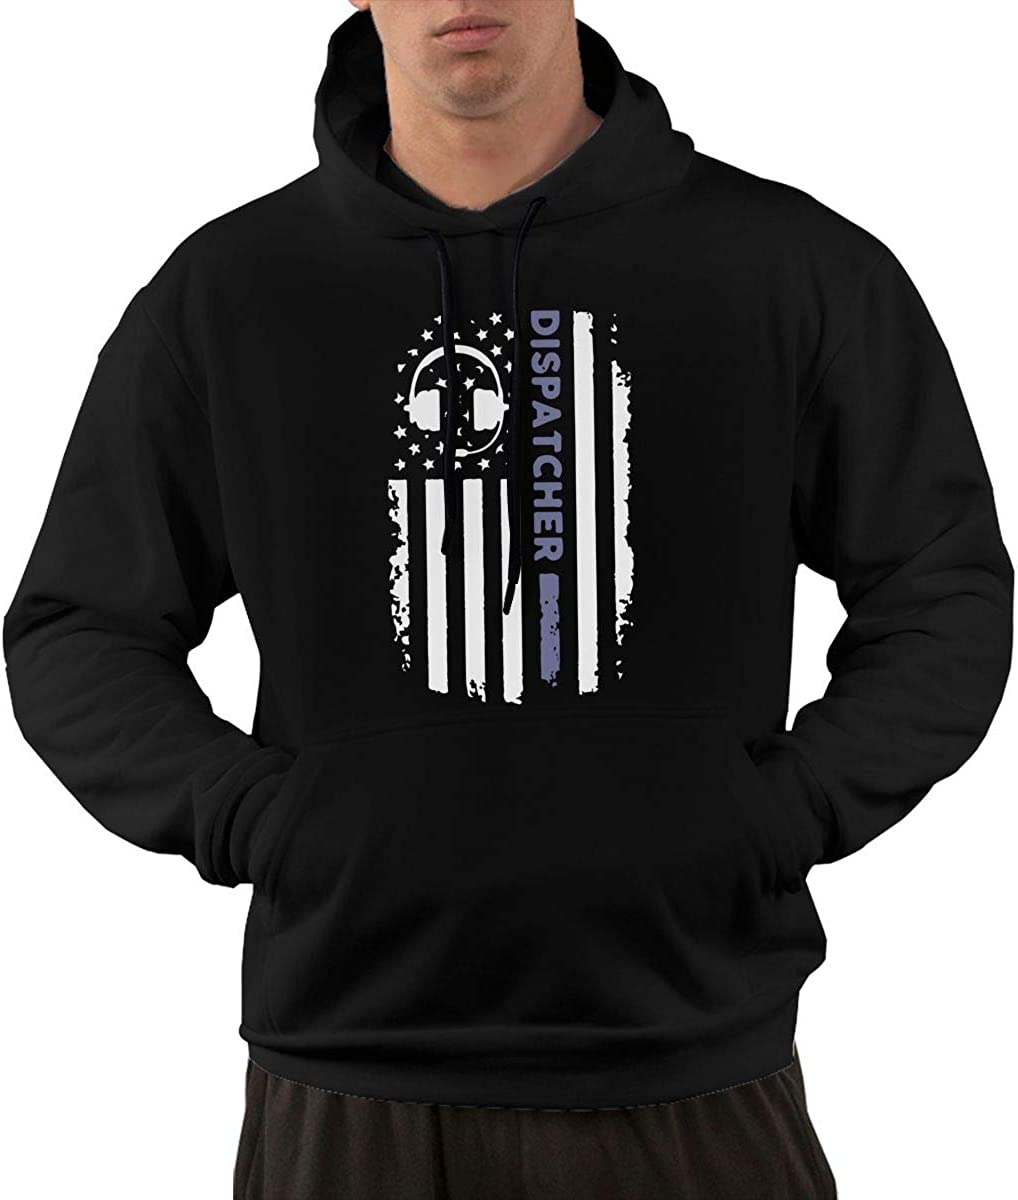 Athletic Cotton Hoodie with Pocket for Men Ou30IL@WY Mens 911 Dispatcher Thin Gold Line Hooded Fleece